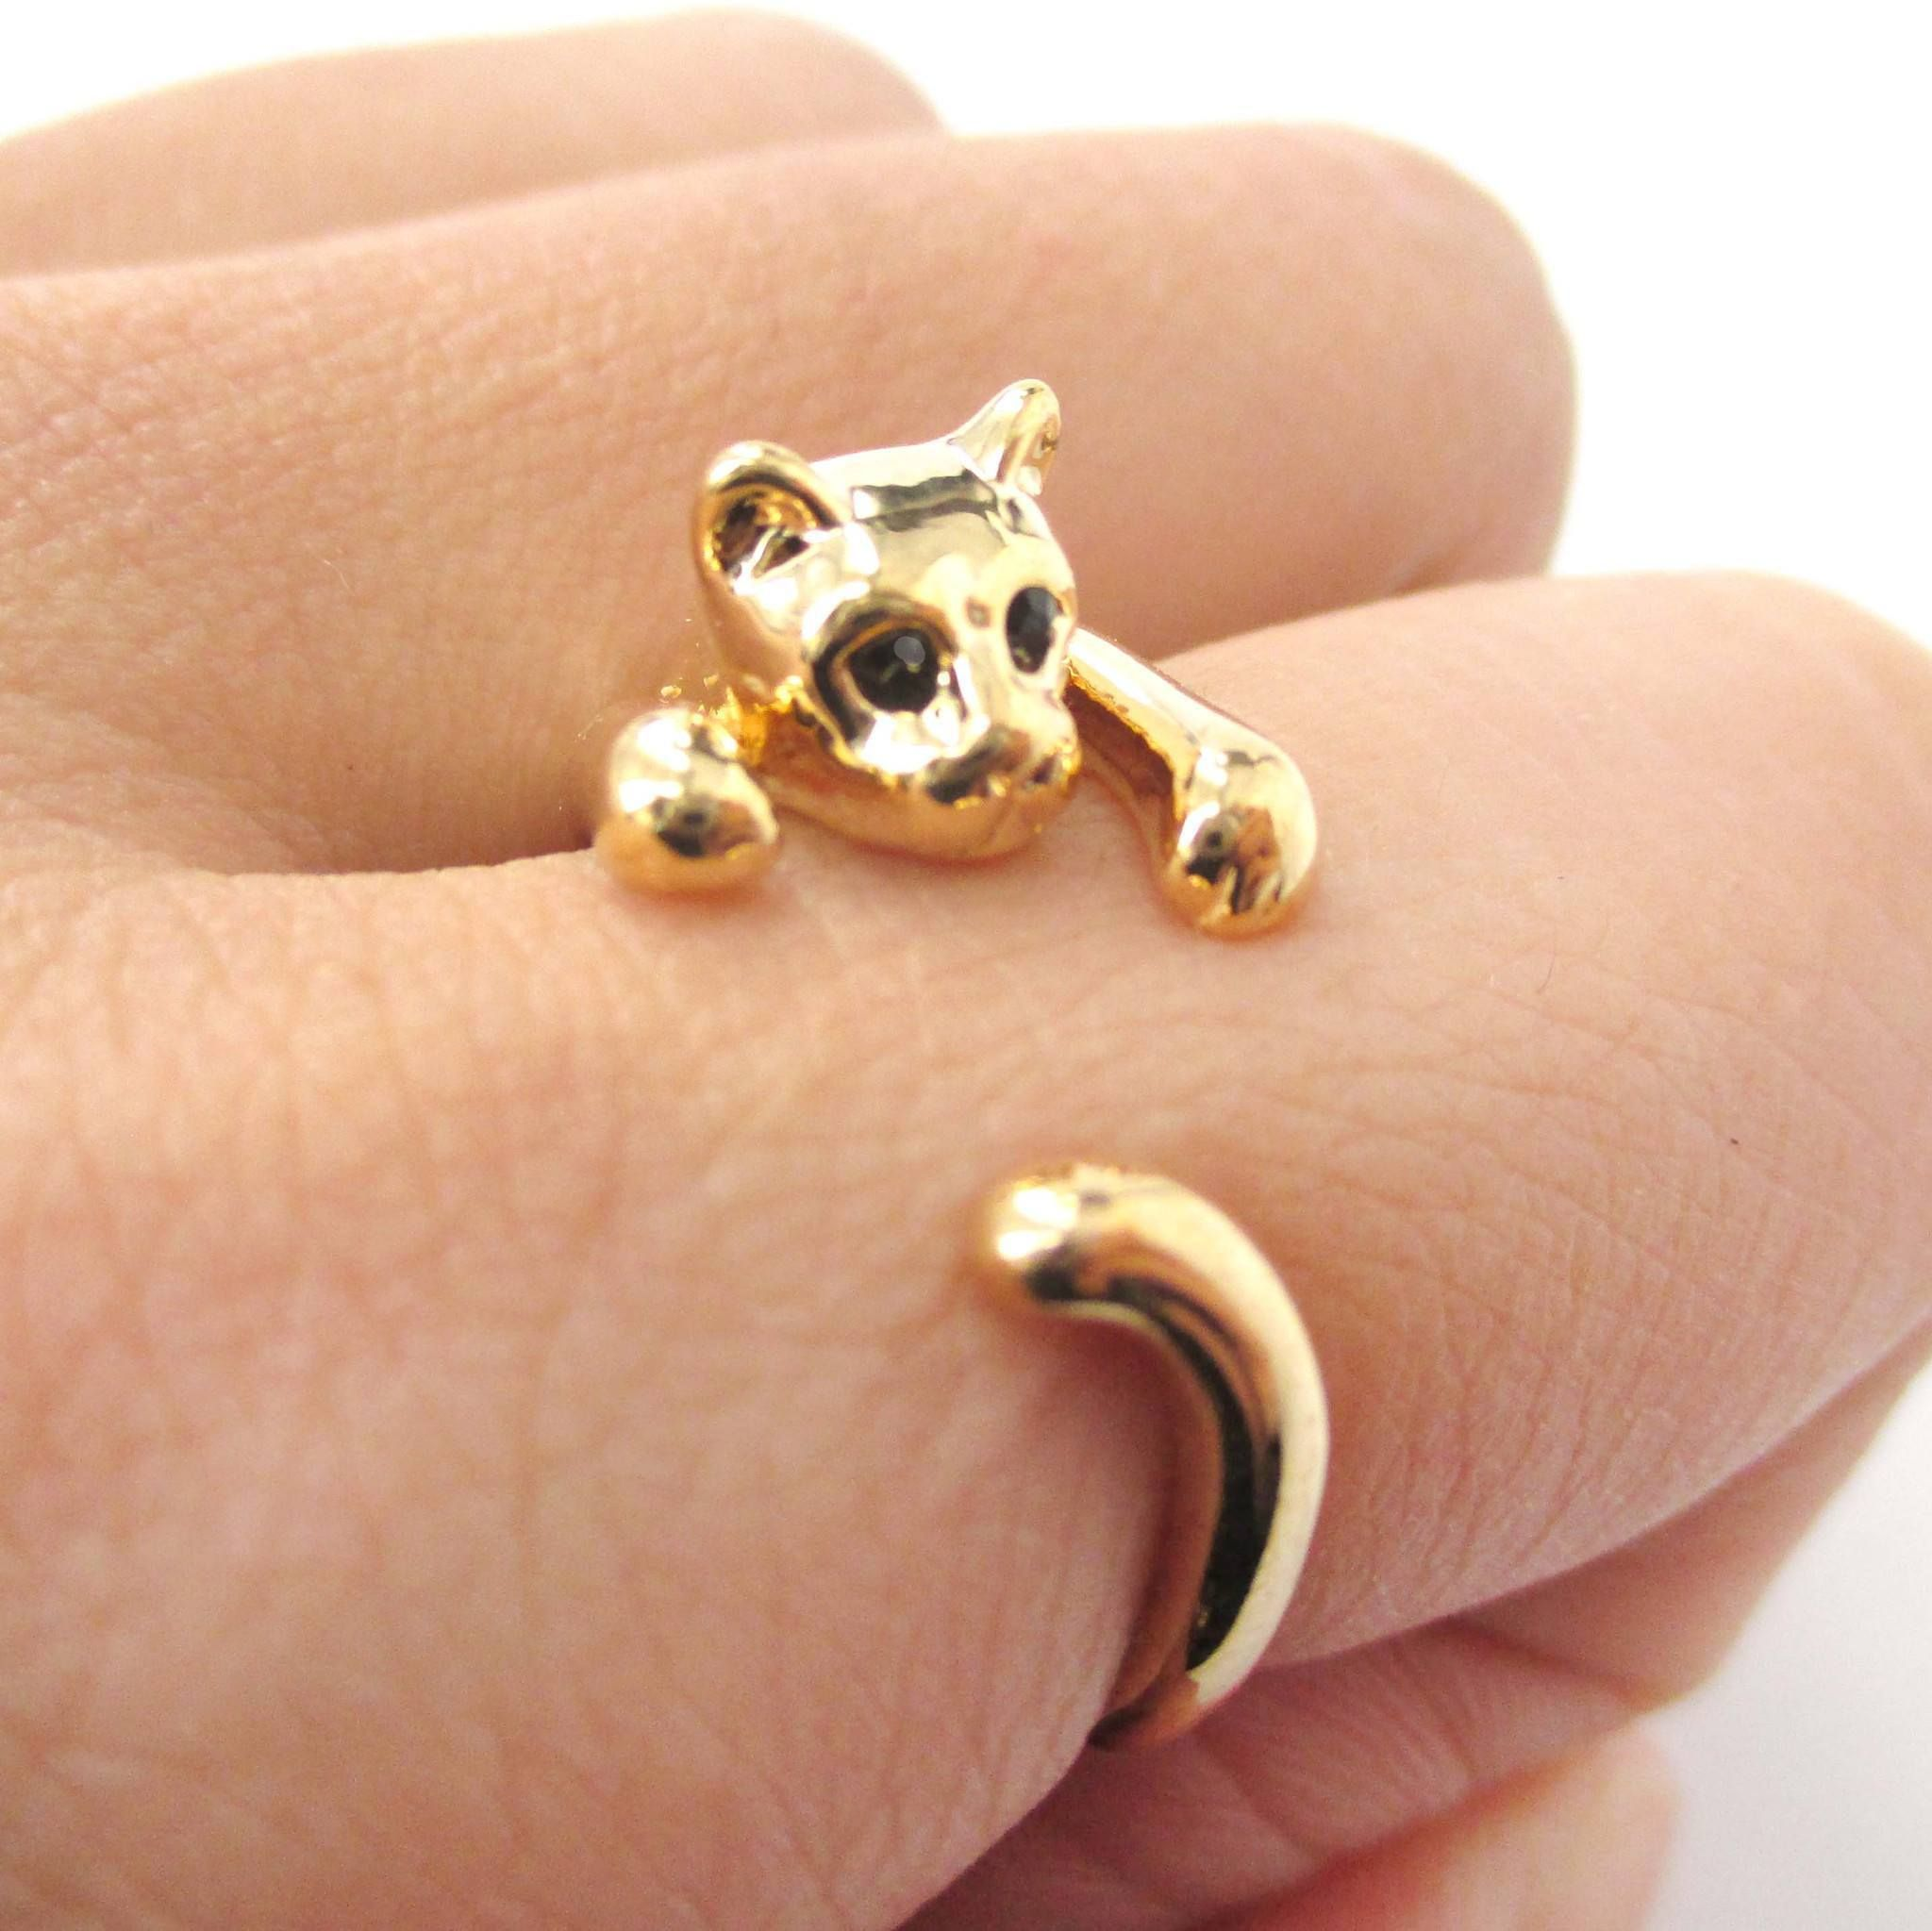 Details Sizing Shipping An adorable animal ring made